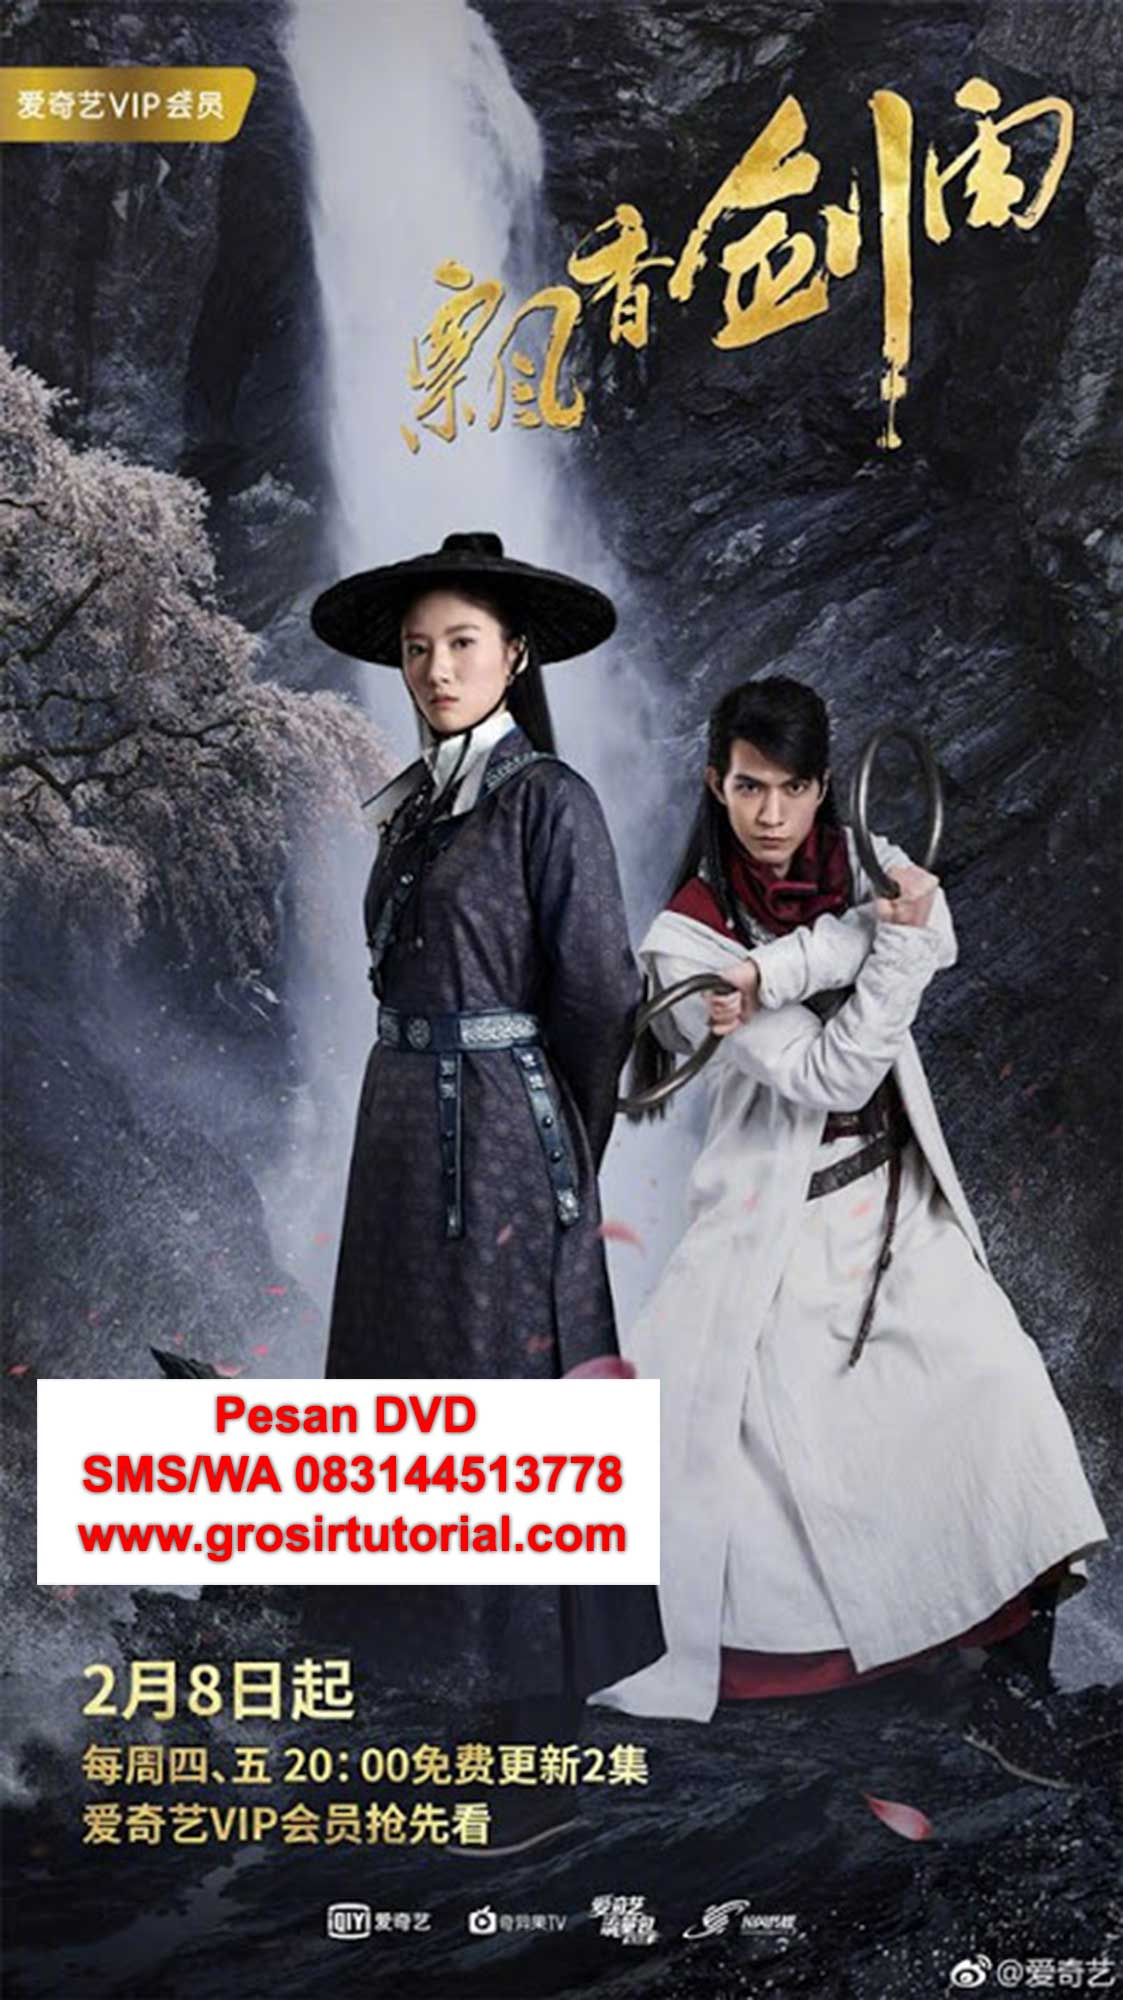 Beli-DVD-Silat-Mandarin-The-Lost-Swordship